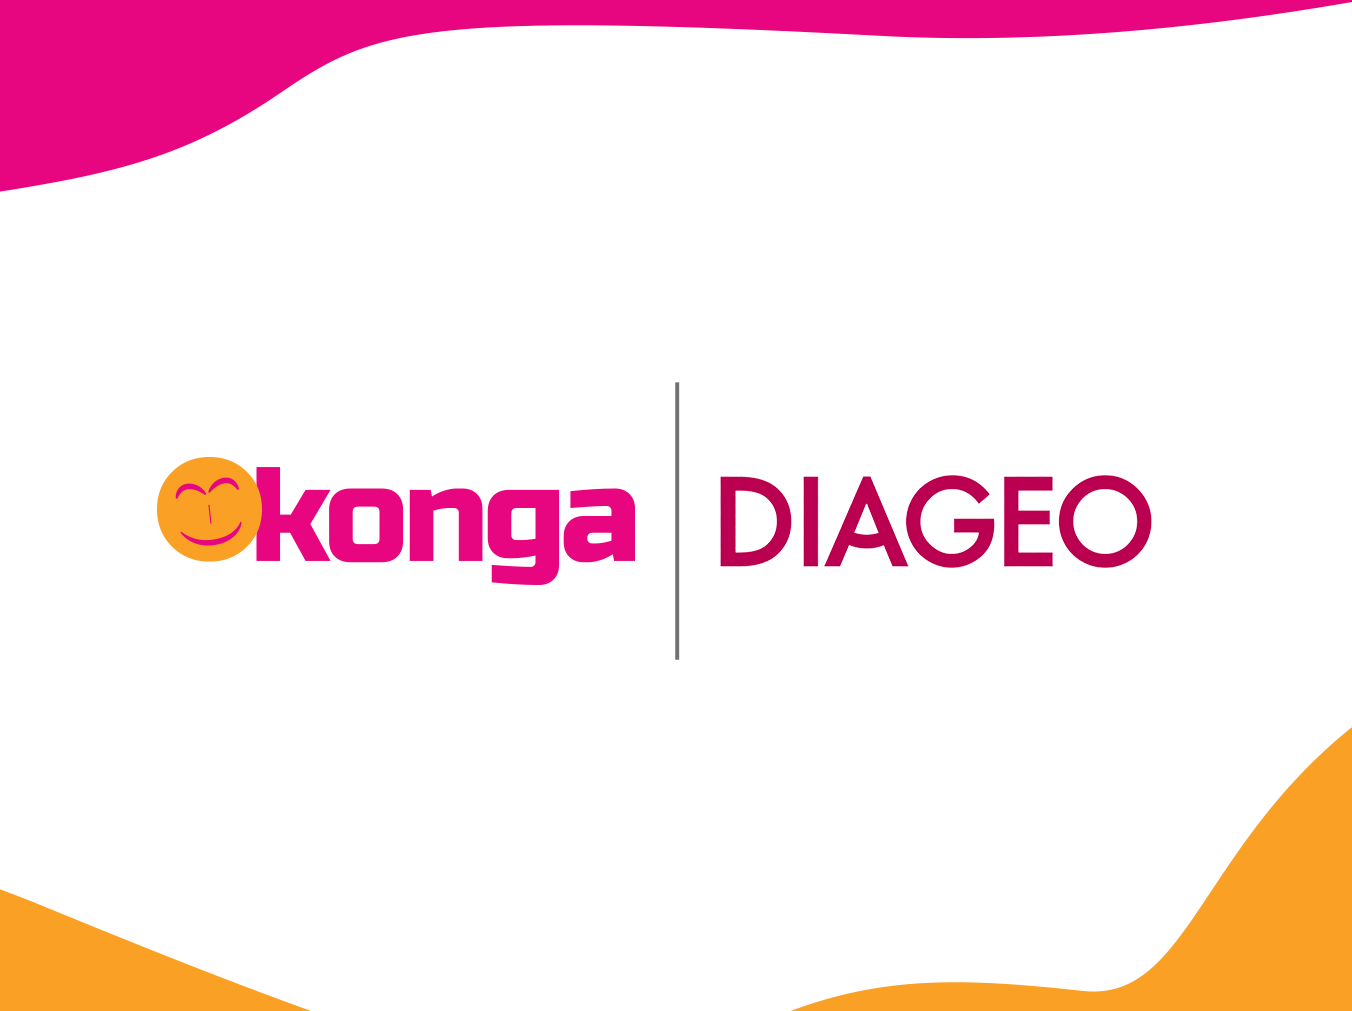 Konga Partners with Diageo